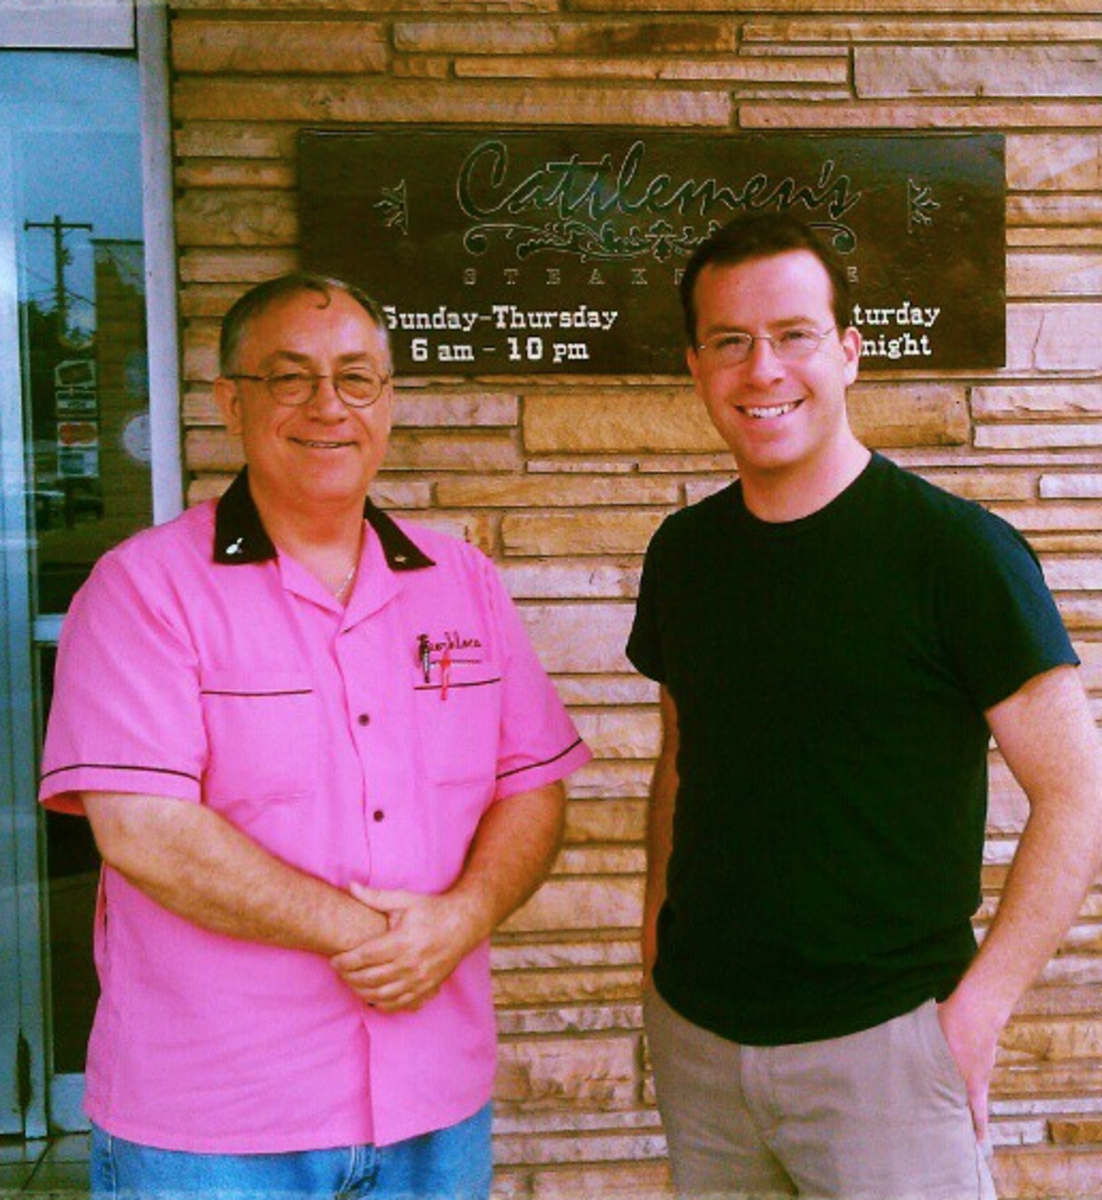 This is my OFW volunteer, Larry Mike, who helped to shepherd me around all weekend and teach me lots of stuff about the region. He even took me to get a steak at the famous Cattleman's Cafe. (The steak was delicious.)